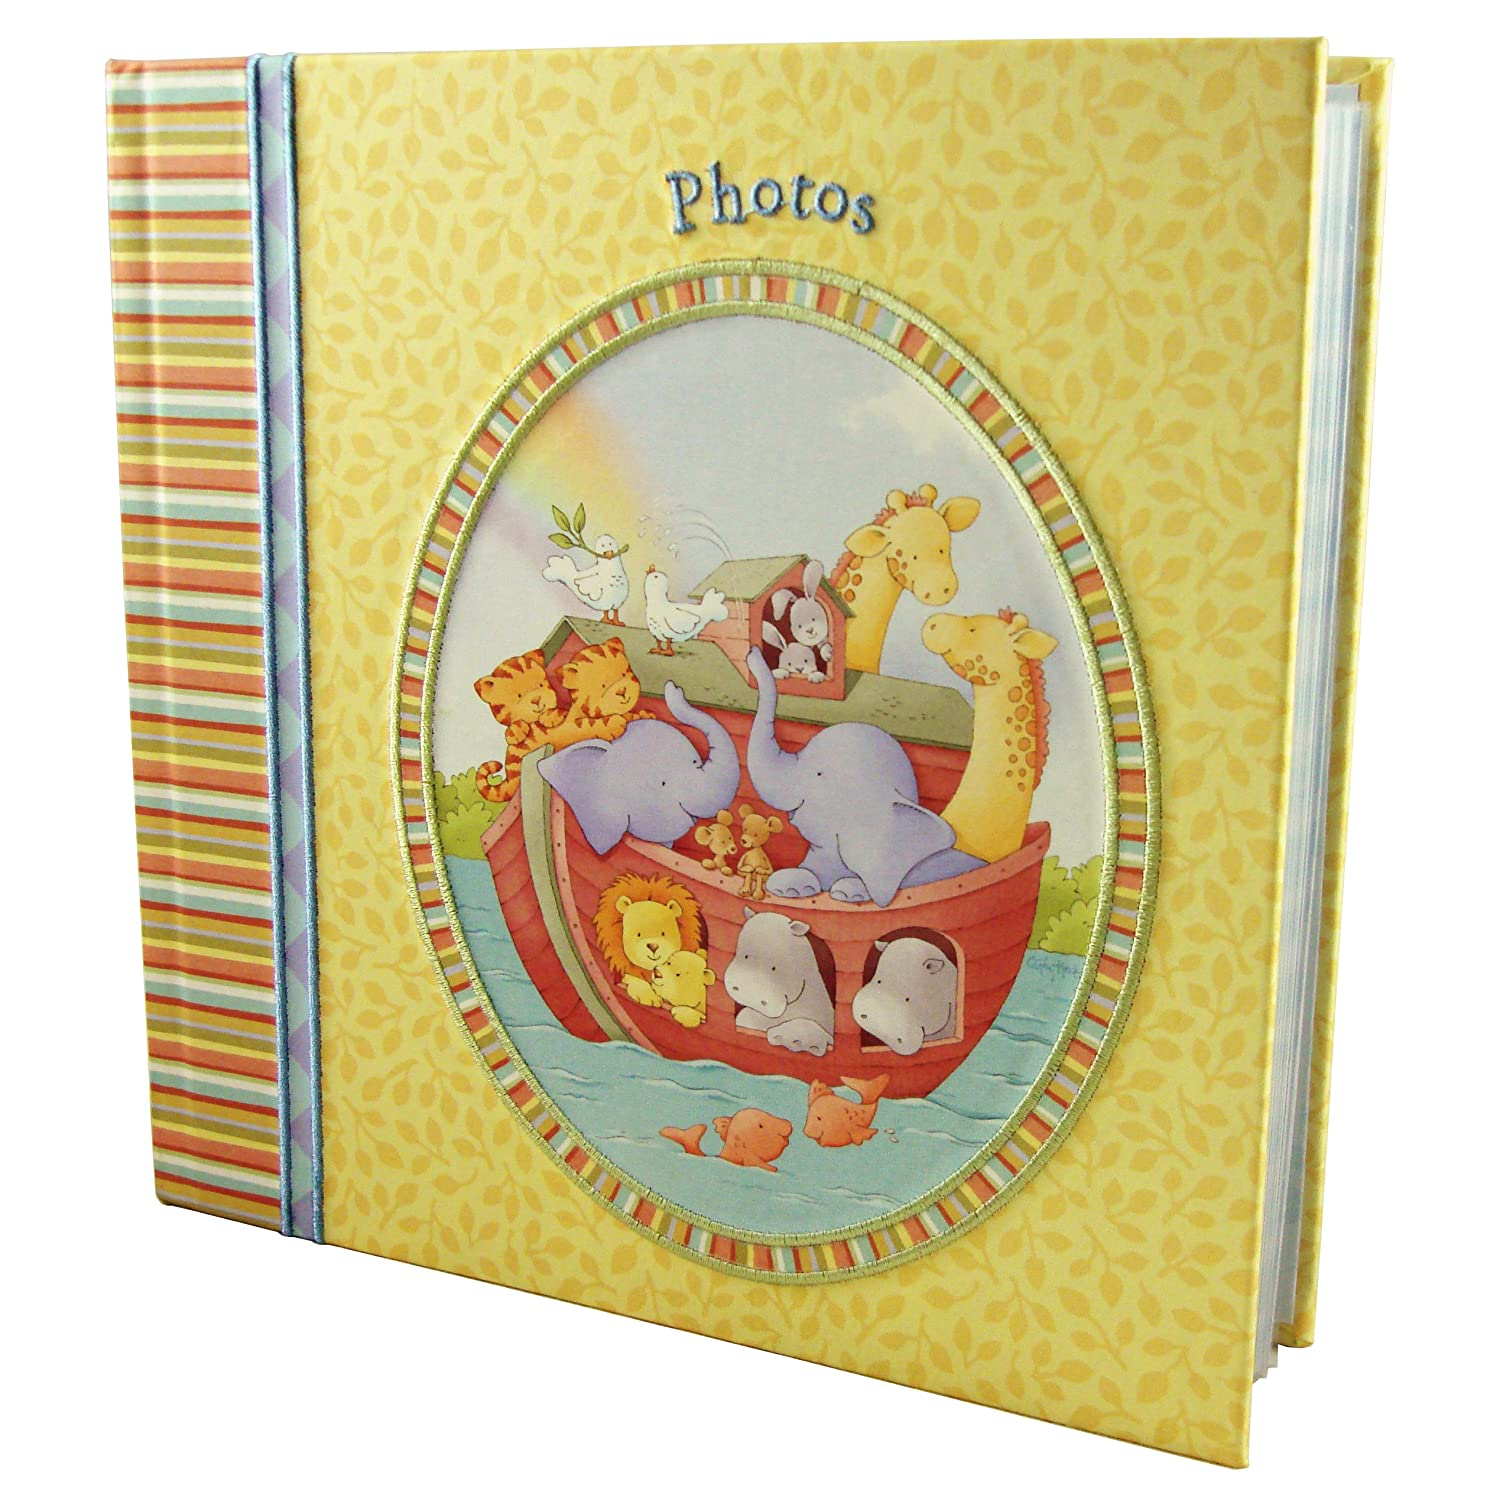 Discontinued by Manufacturer Welcome Home Noah C.R Gibson Bound Photo Journal Album